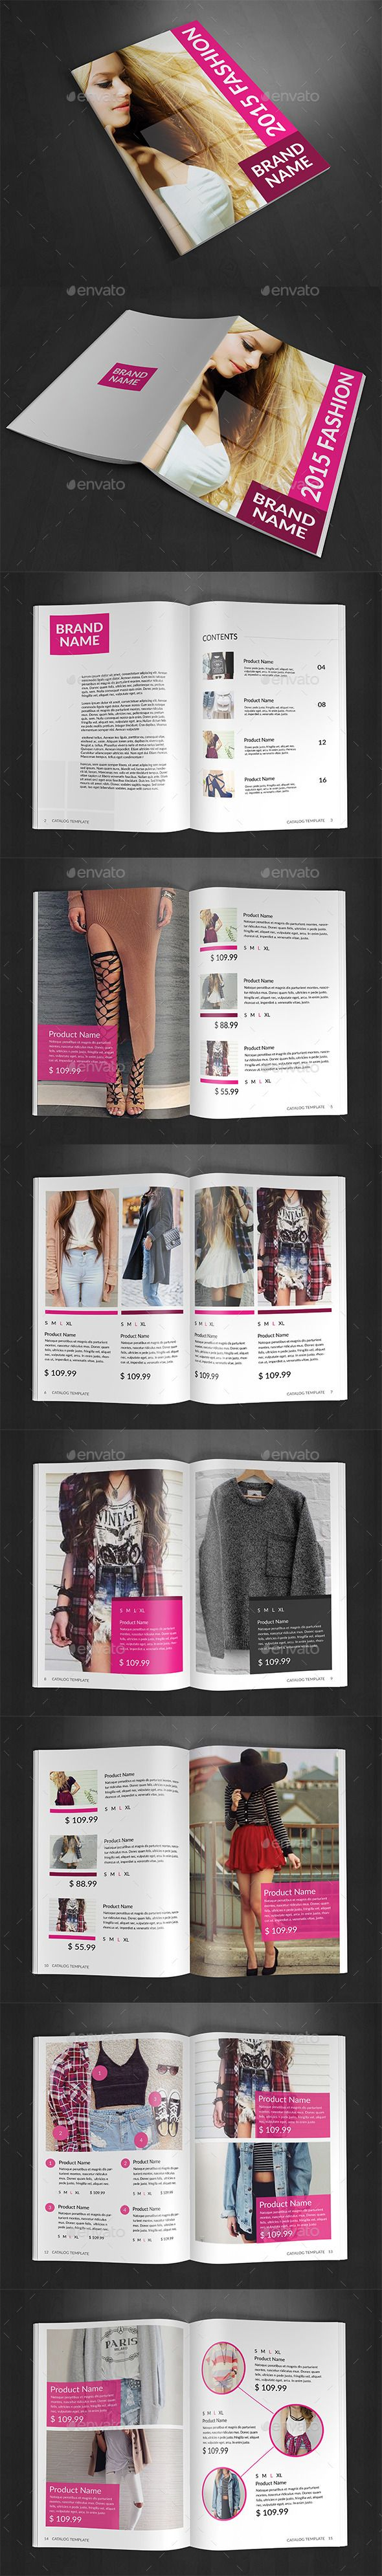 Product Fashion Catalog Design Template desing catalog Download – Fashion Design Brochure Template